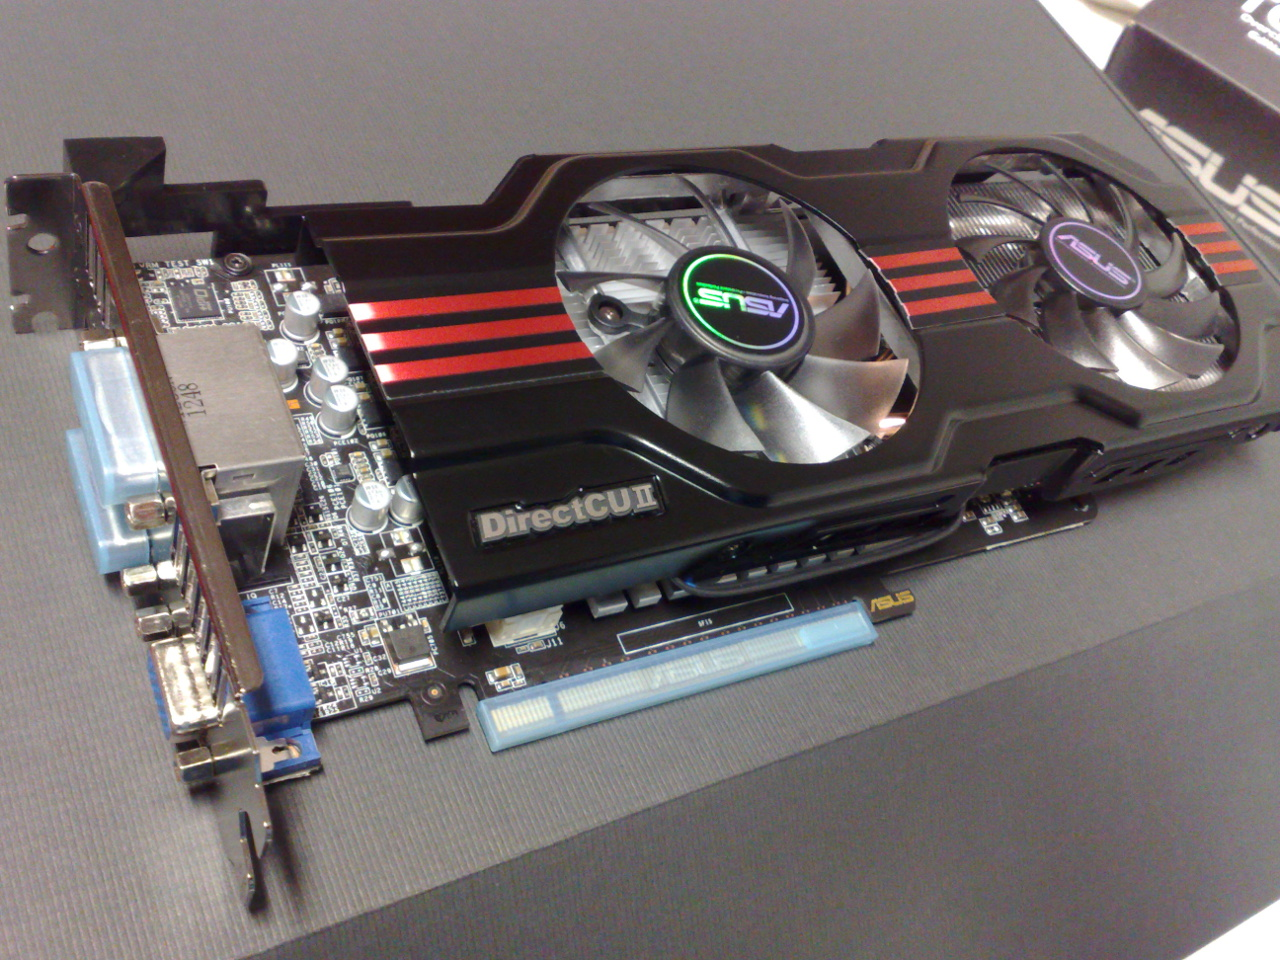 ASUS_GTX-650_Ti_TOP_Cu-II_PCI_Express_3.0_x16_graphics_card